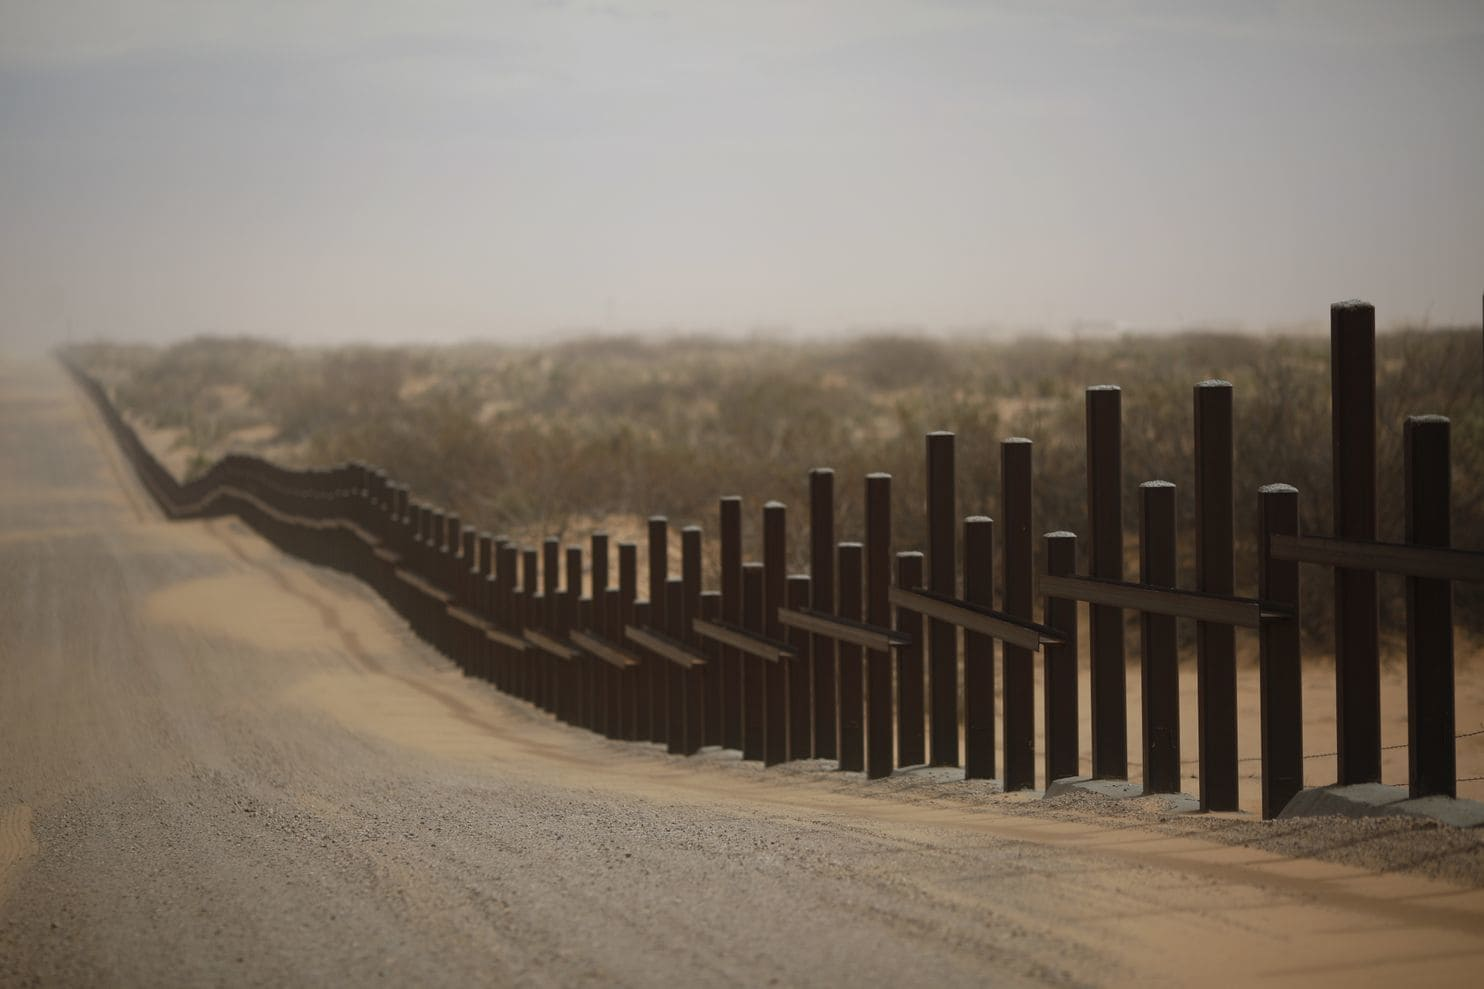 """How Secure Are the US Borders?"" Essay"